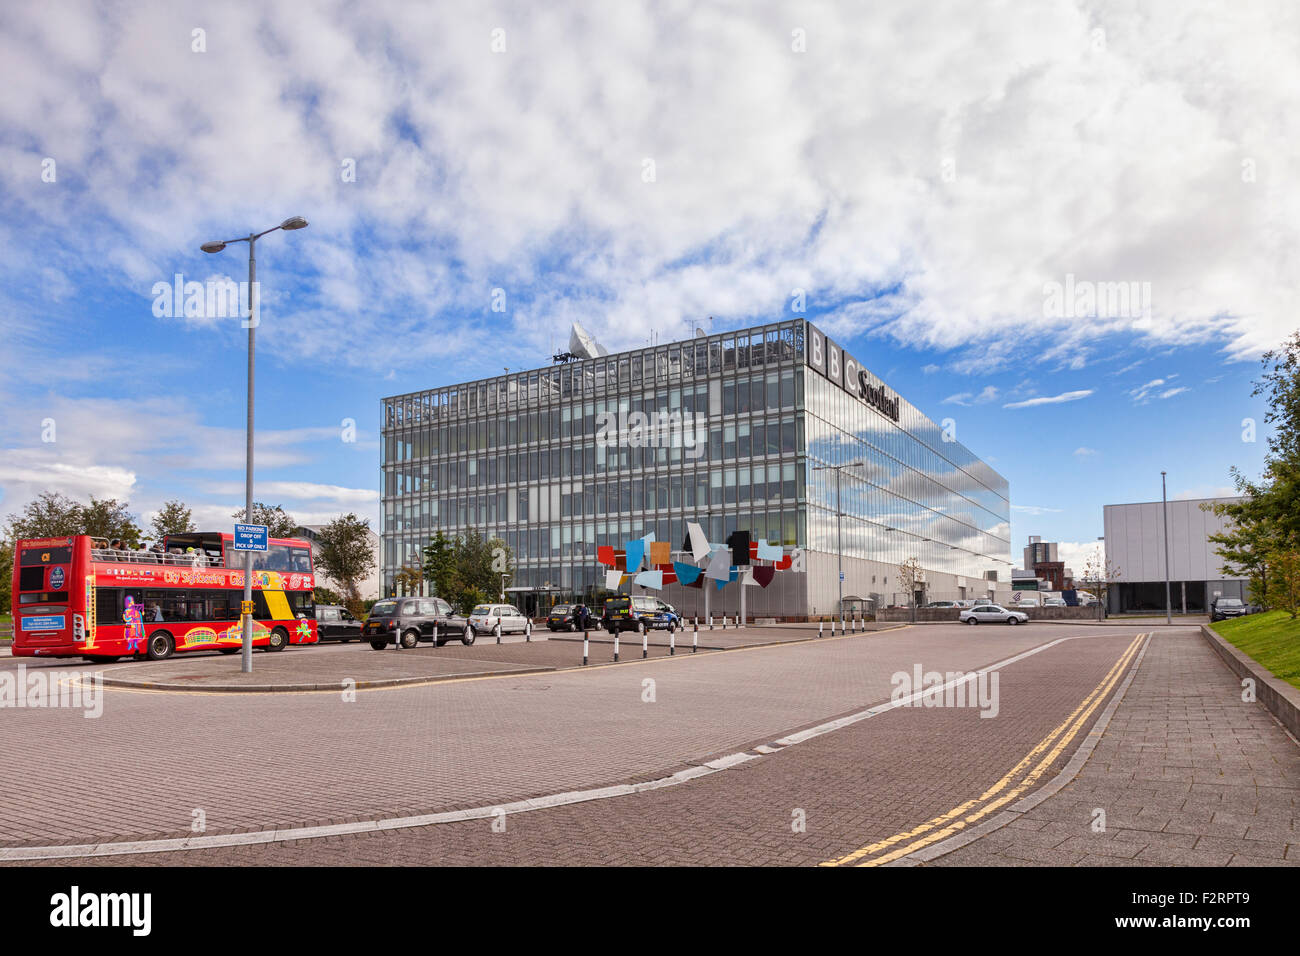 Headquarters of BBC Scotland, Glasgow. Outside are taxi cabs and a tour bus. - Stock Image